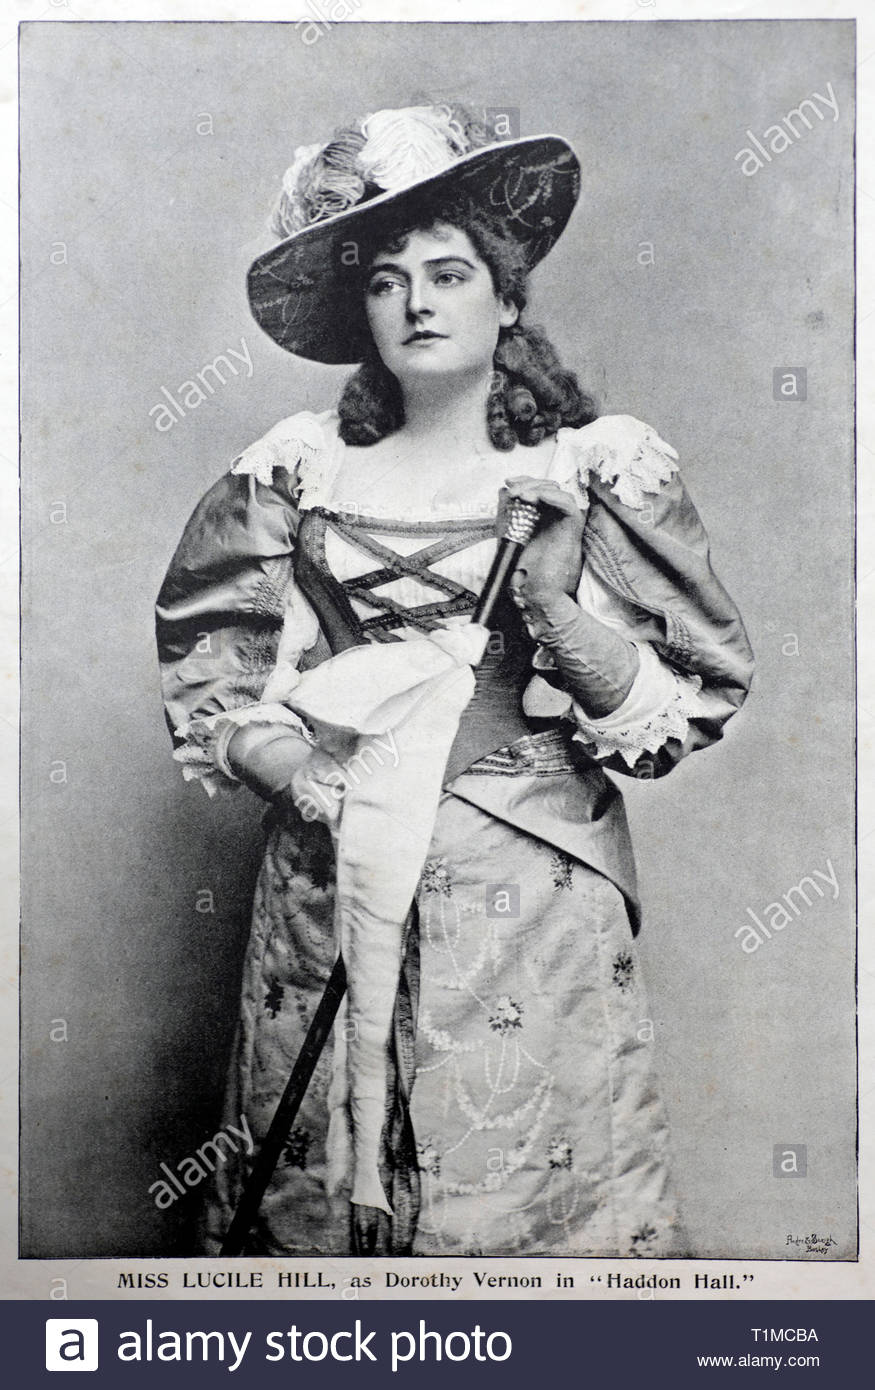 American born soprano Lucile Hill, photograph from 1890s - Stock Image